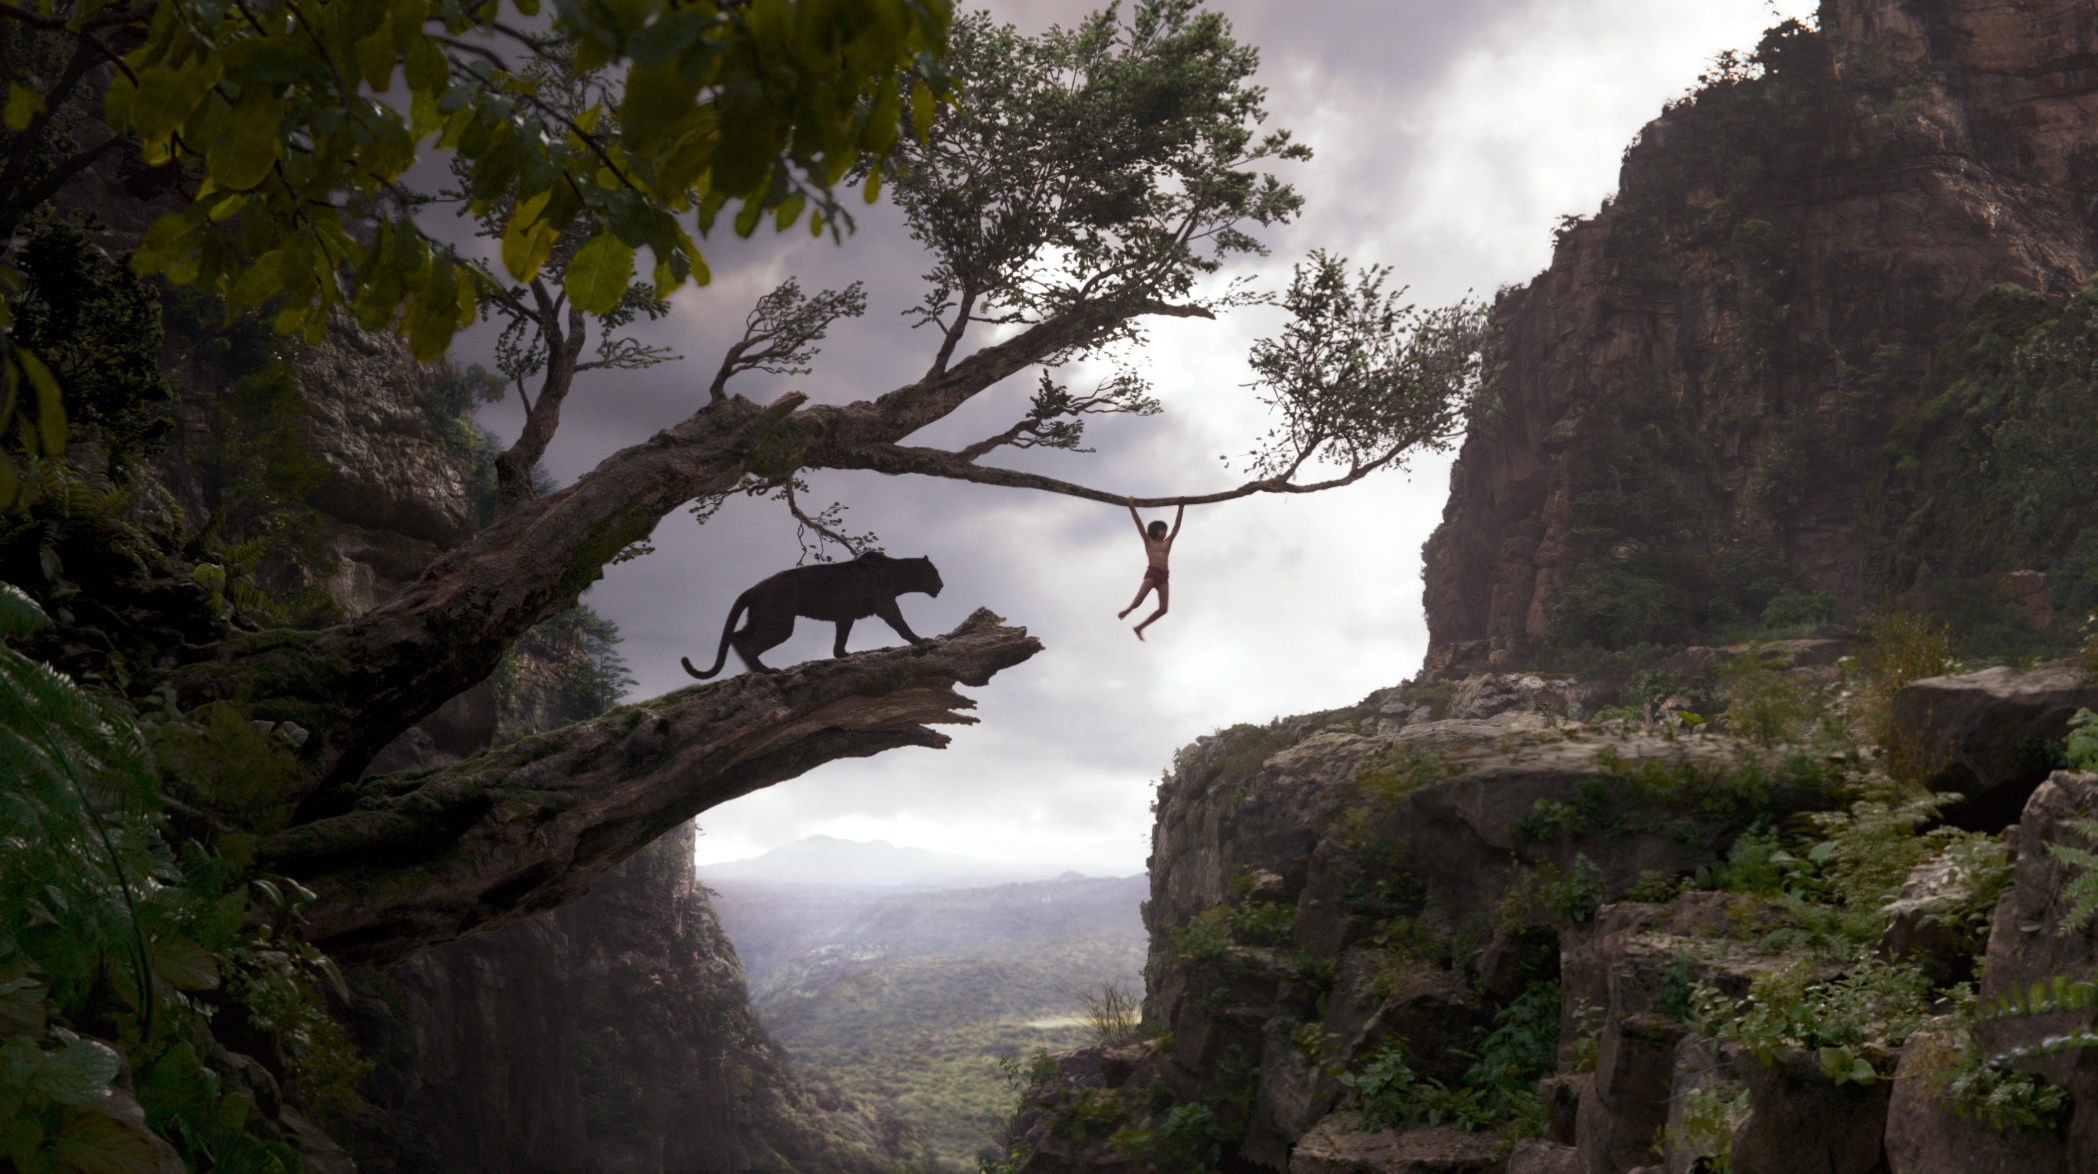 A scene from 'The Jungle Book'.